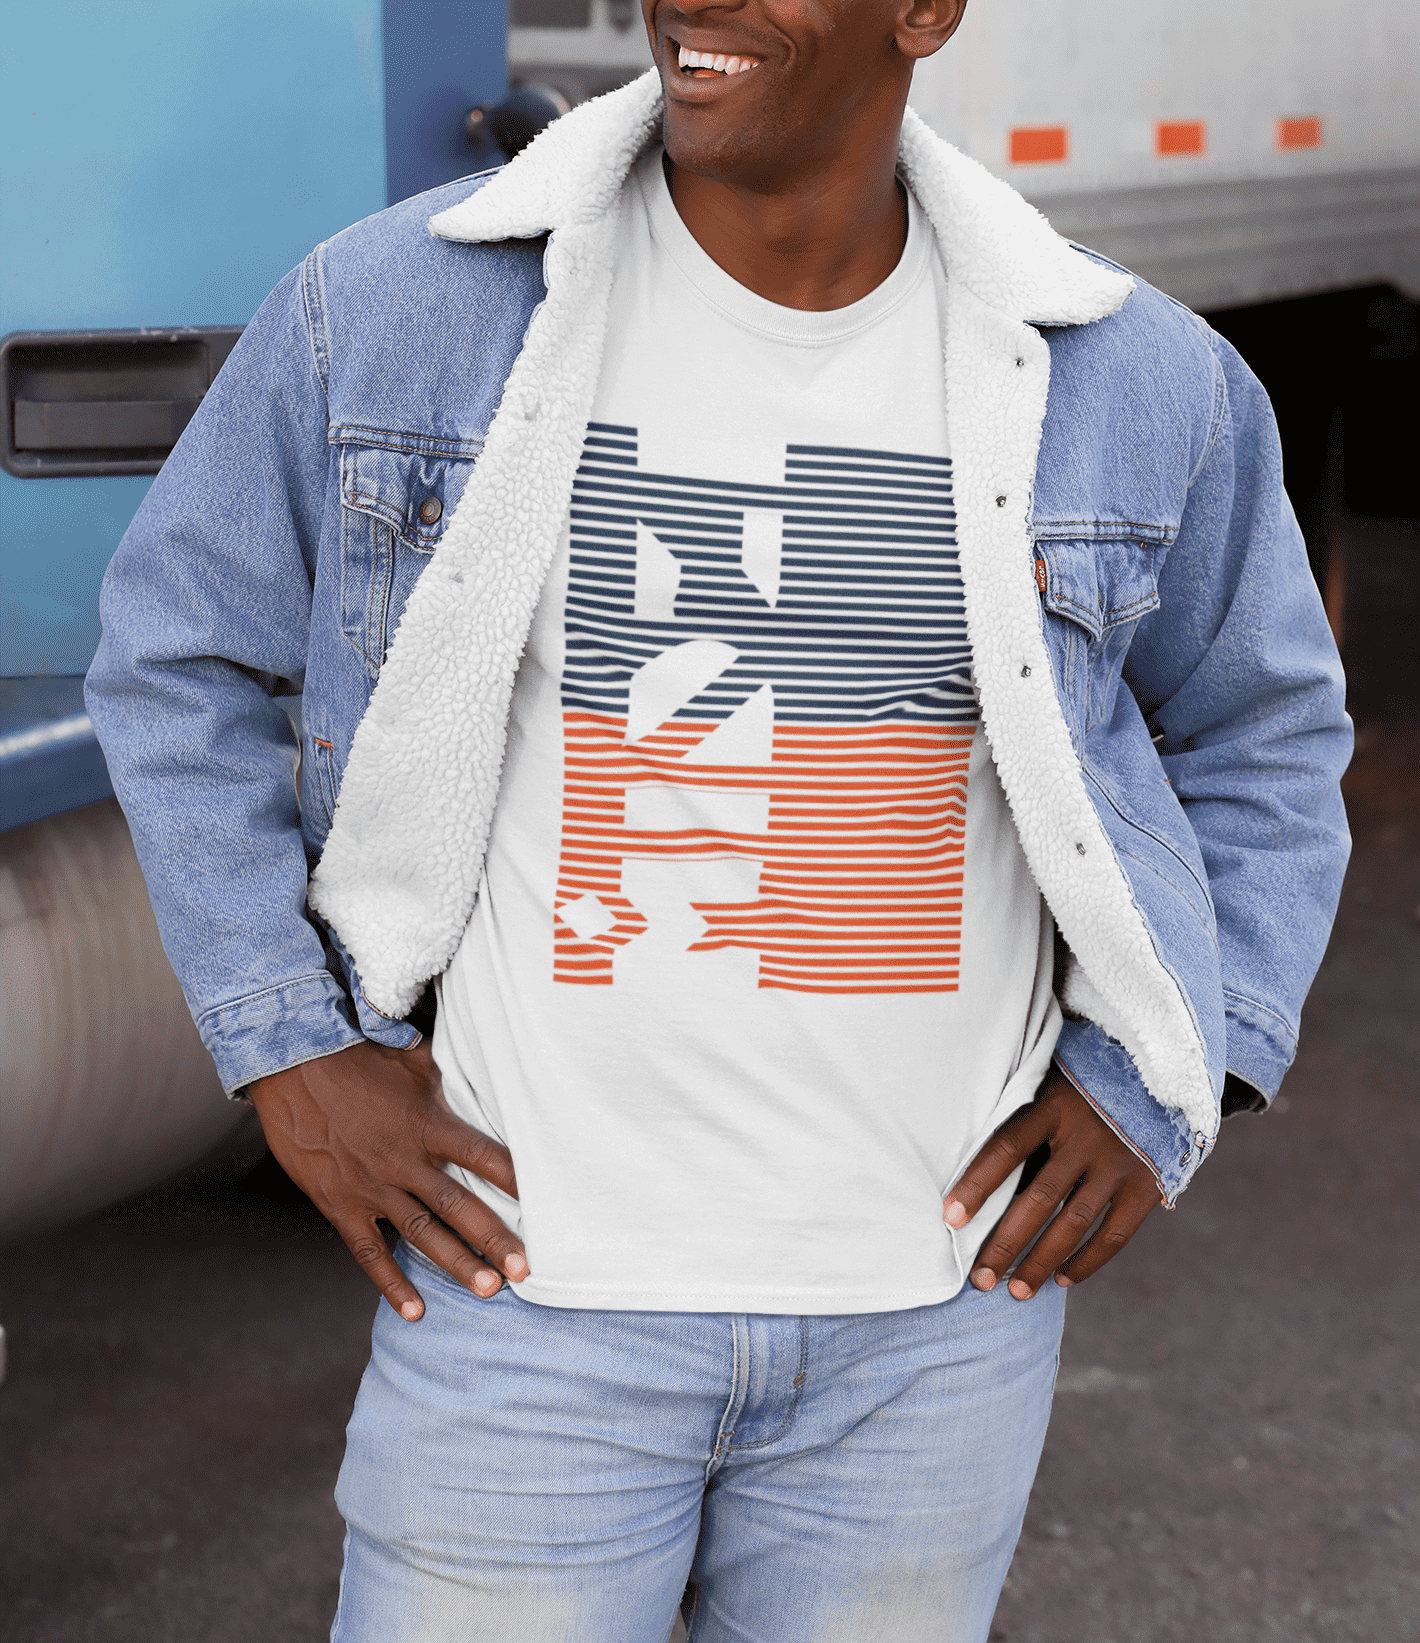 Midzi Ladder Graphic Tee